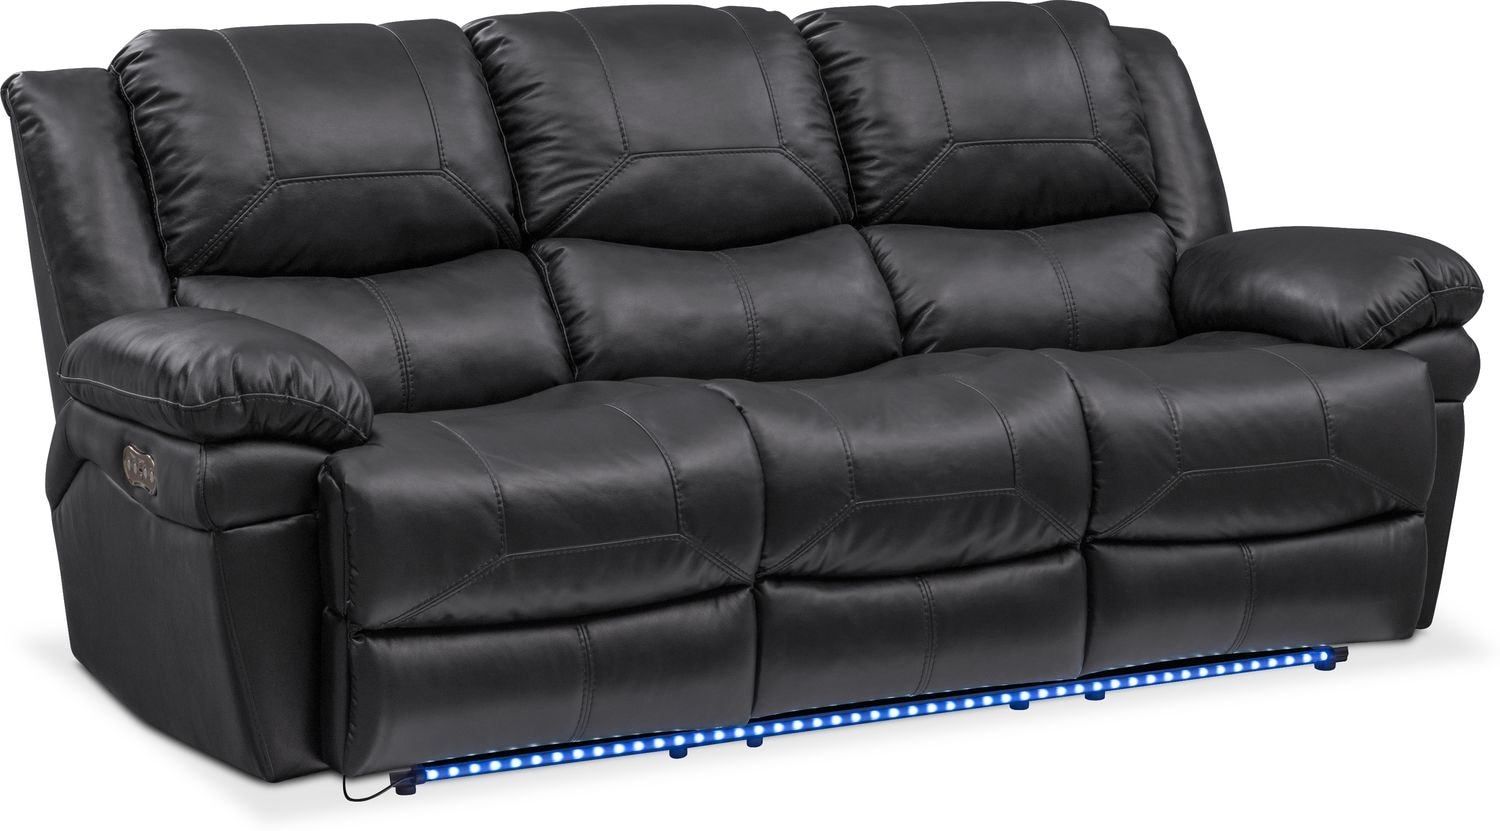 Monza Dual Power Reclining Sofa And Reclining Loveseat Set